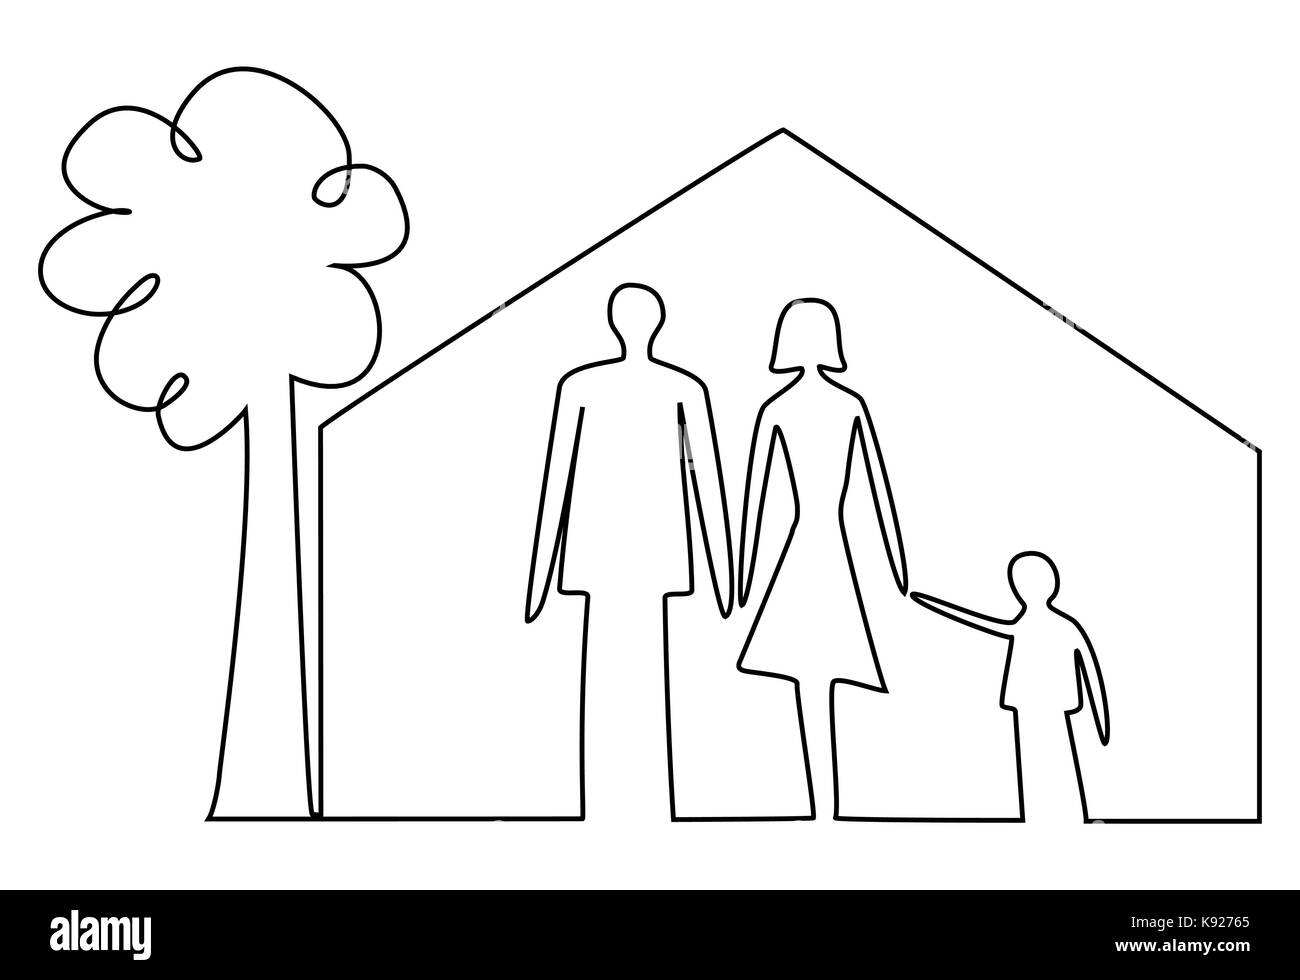 hight resolution of family home one line drawing